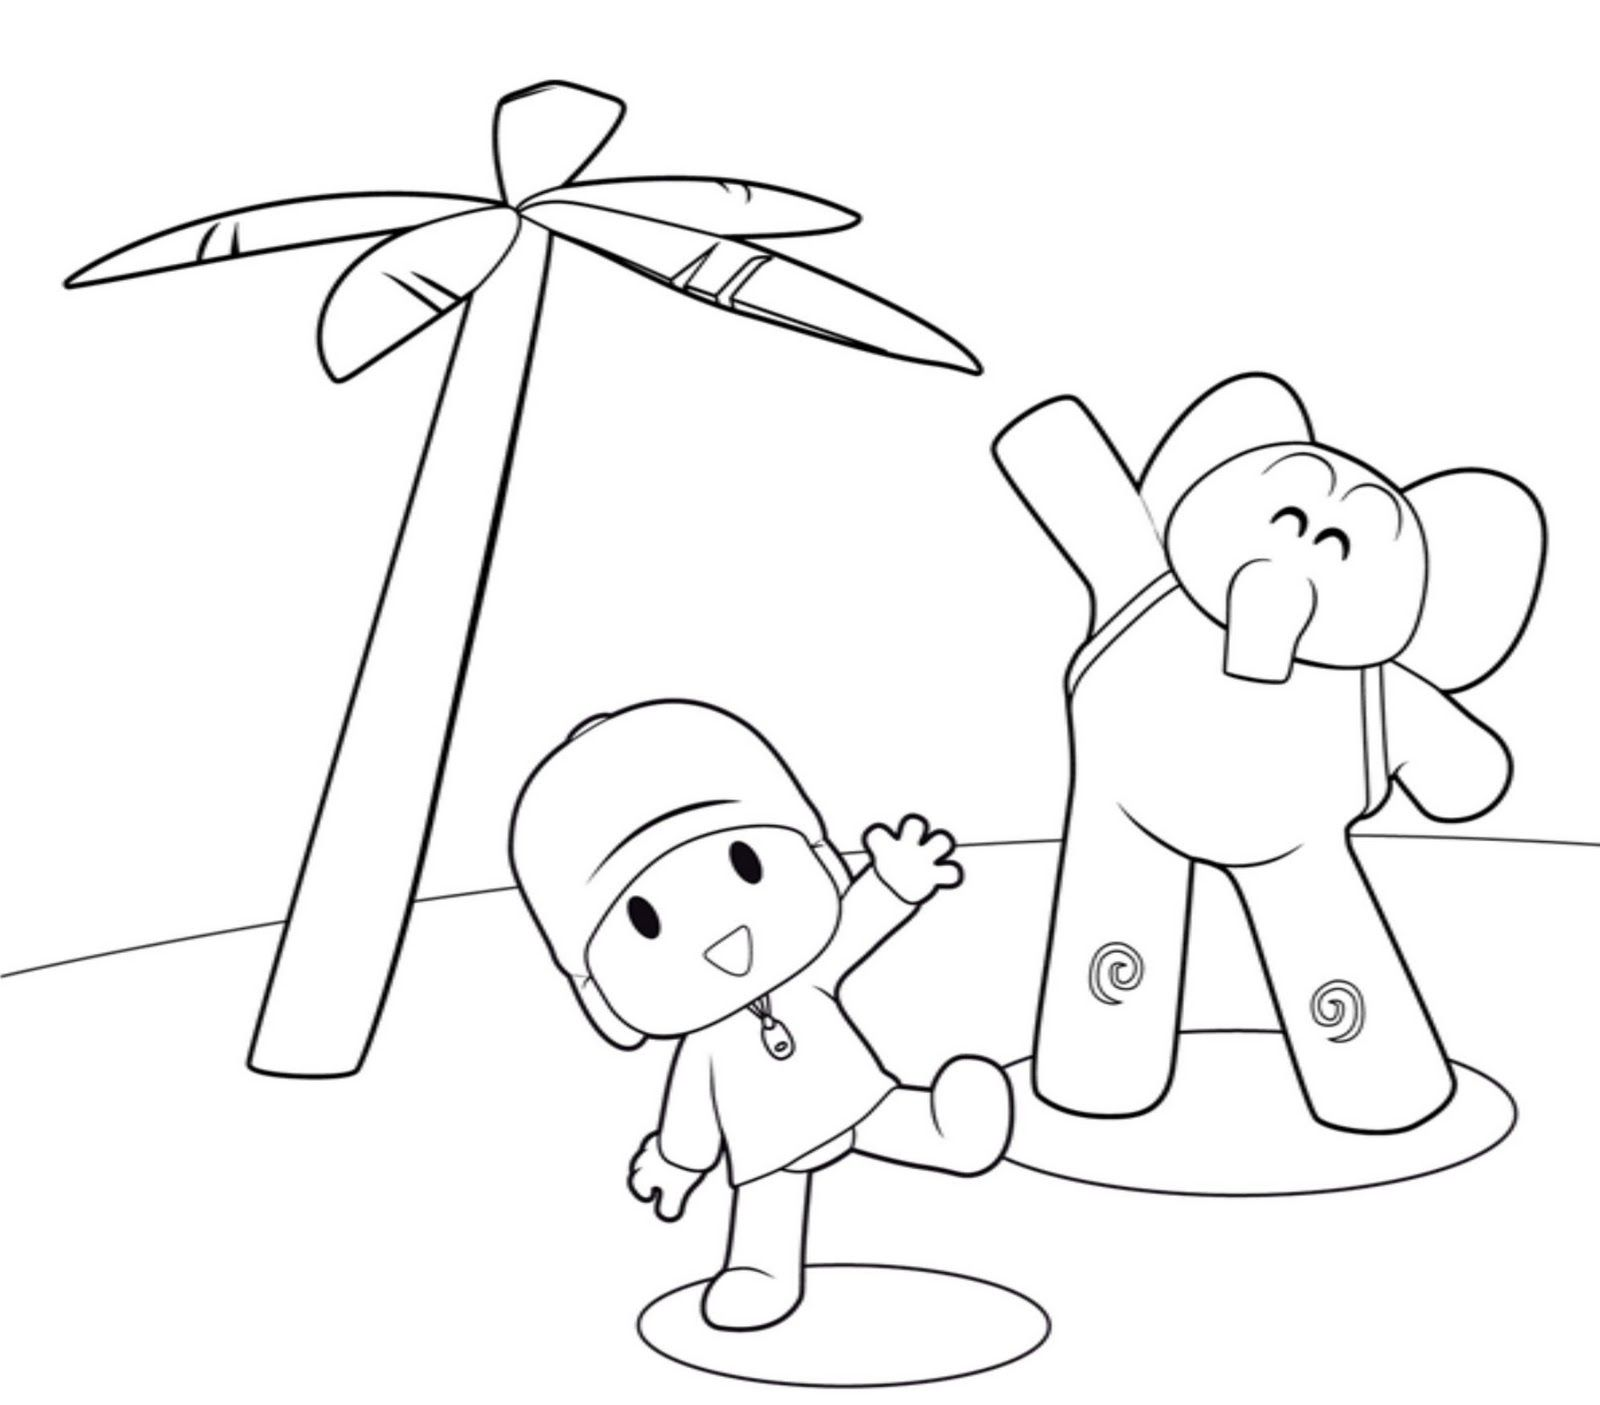 Free Printable Pocoyo Coloring Pages For Kids ALEJANDRA RECIPES